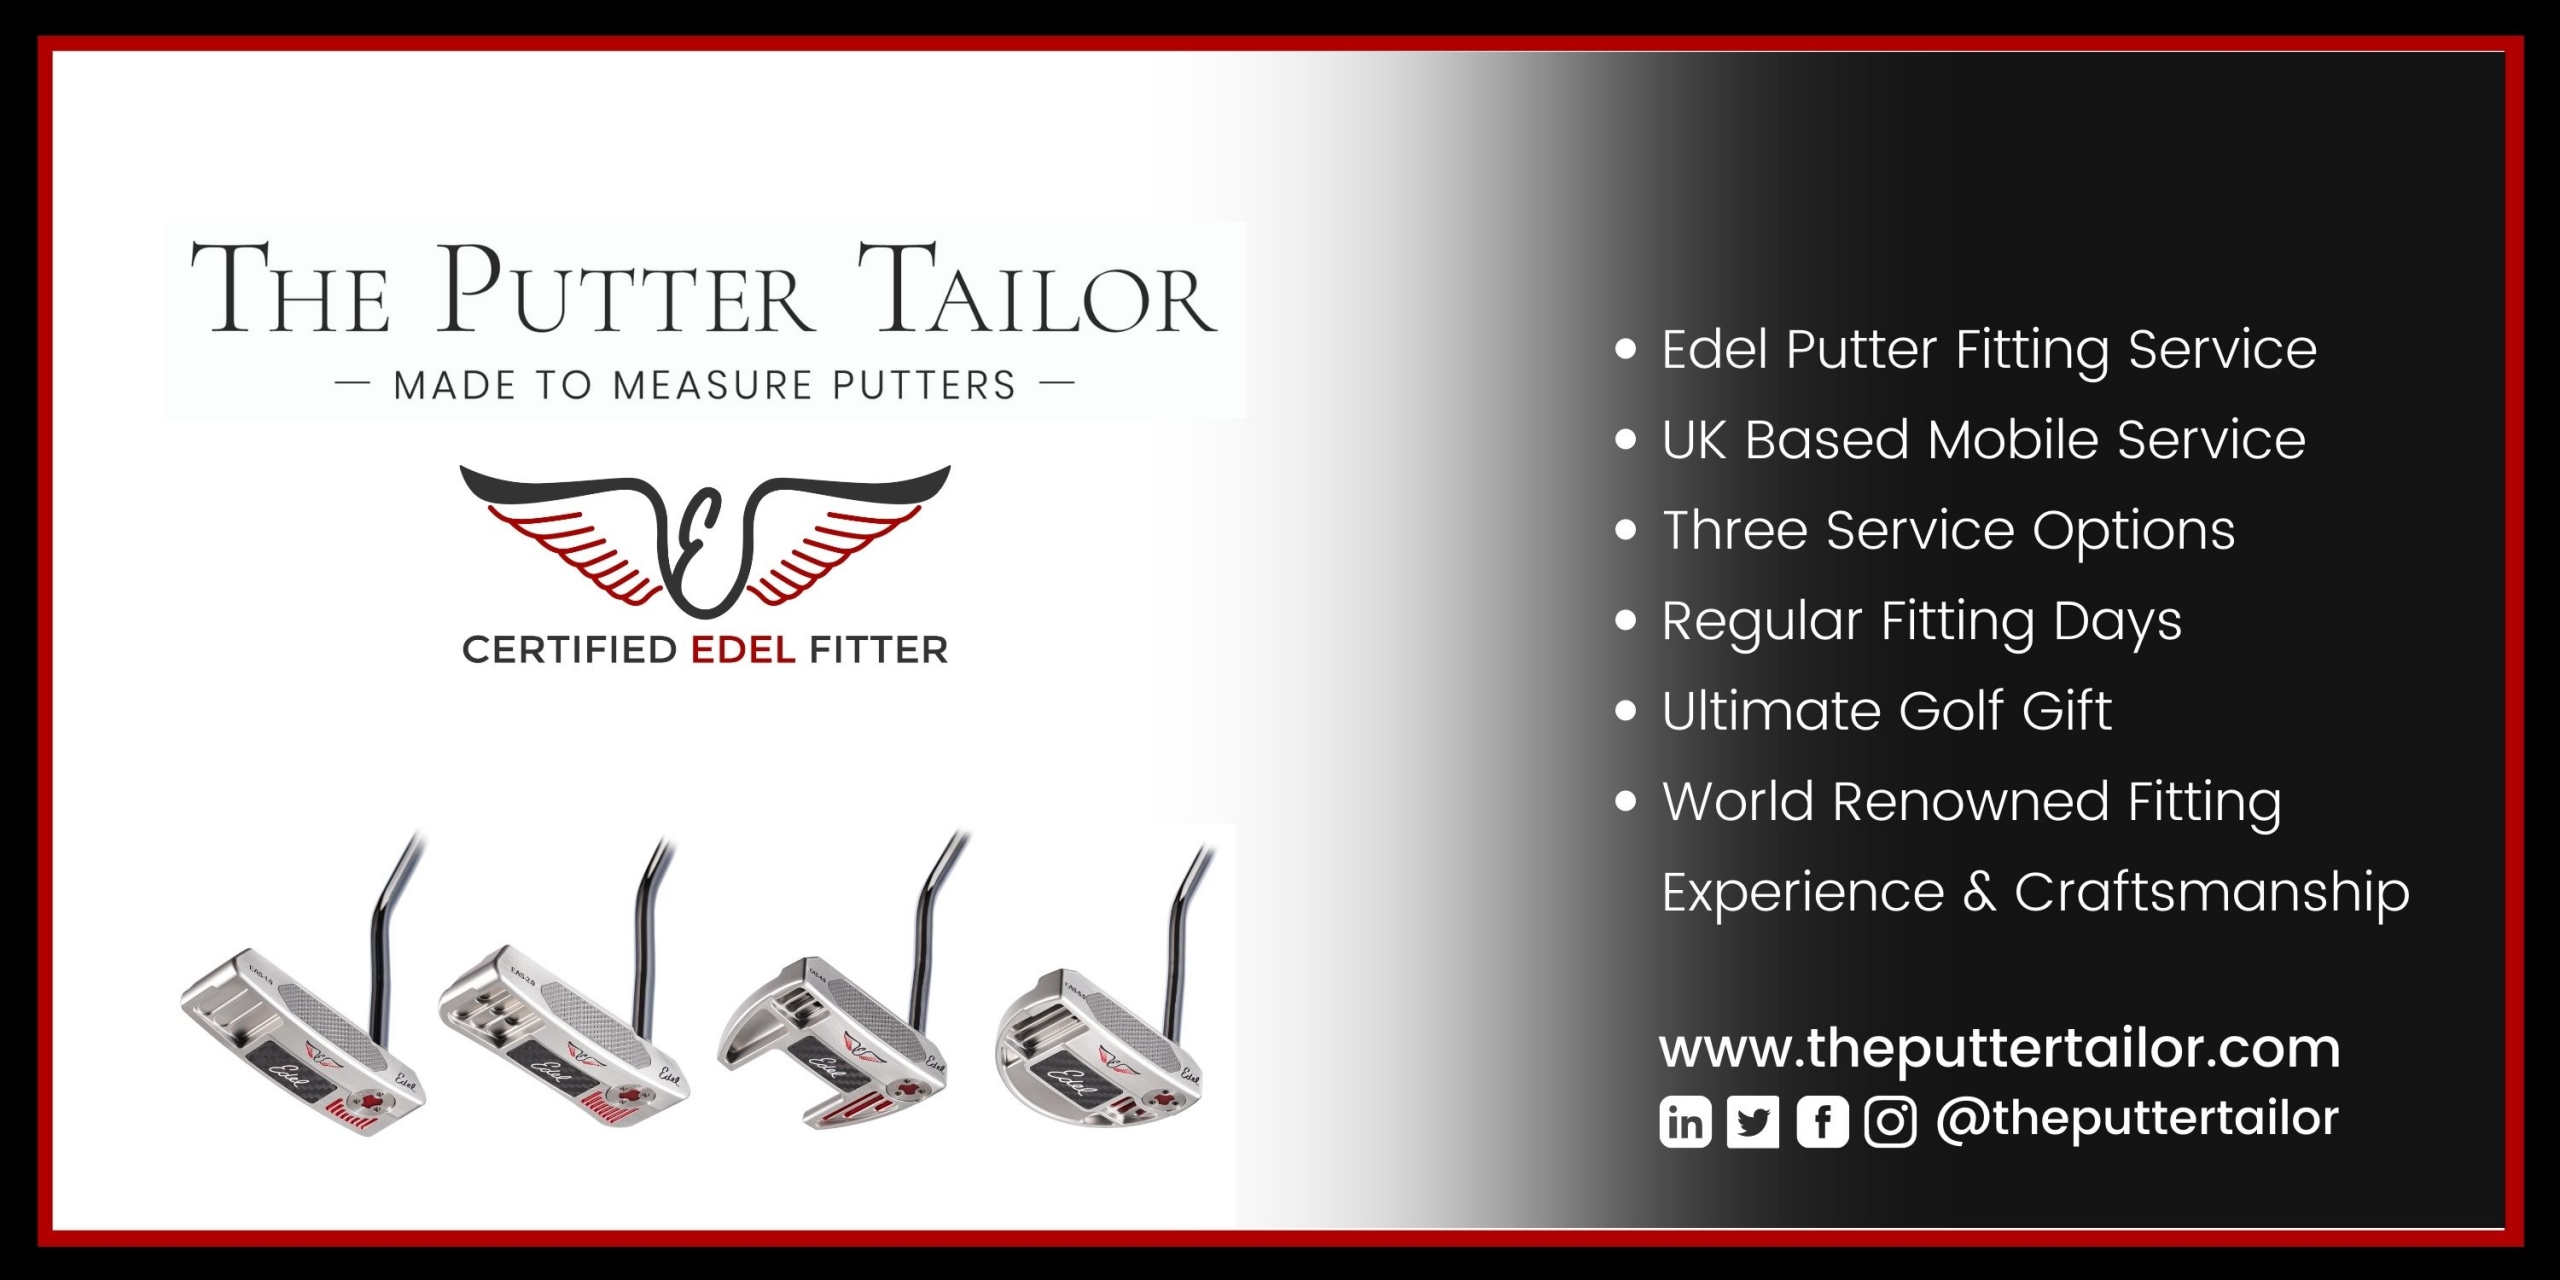 The Putter Tailor is a Certfied Fitter for EAS Putters and SMS Wedges in The UK for Edel Golf